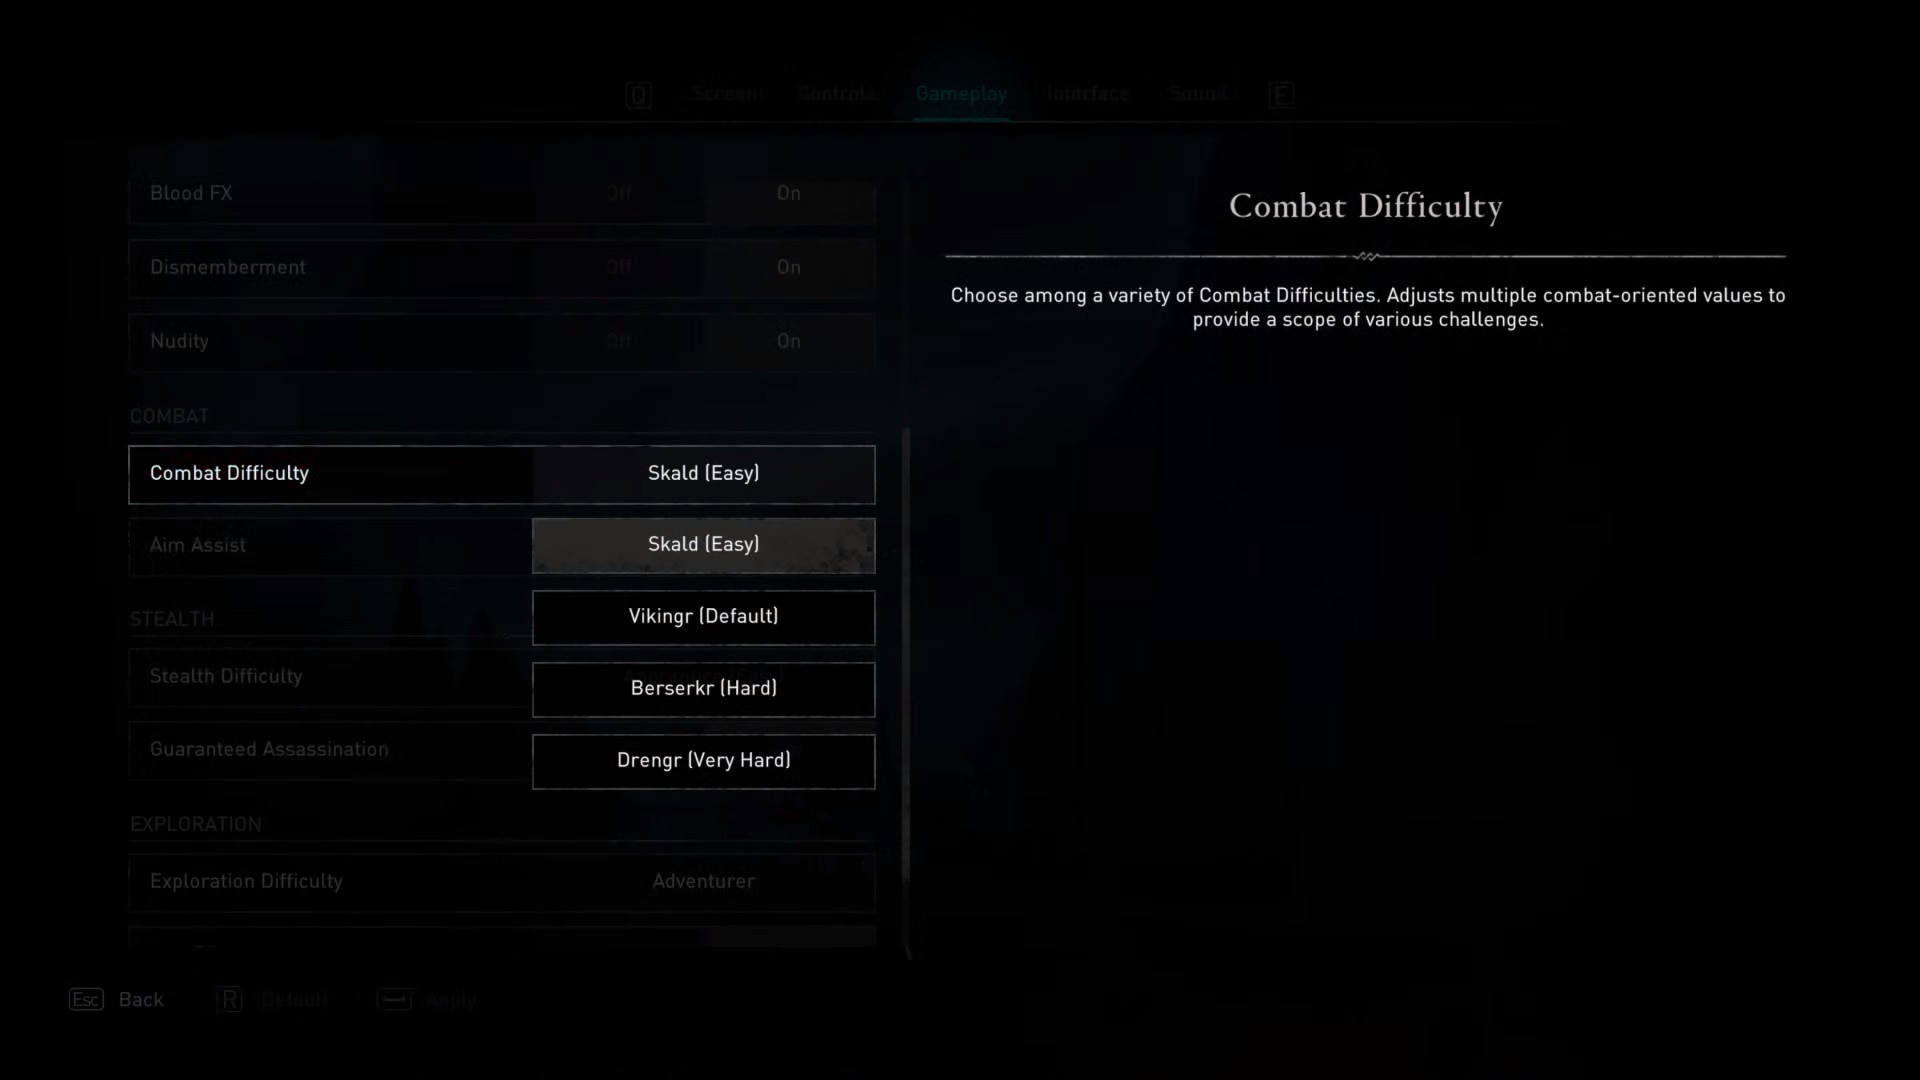 Combat difficulty option in the gameplay options of Assassin's Creed Valhalla